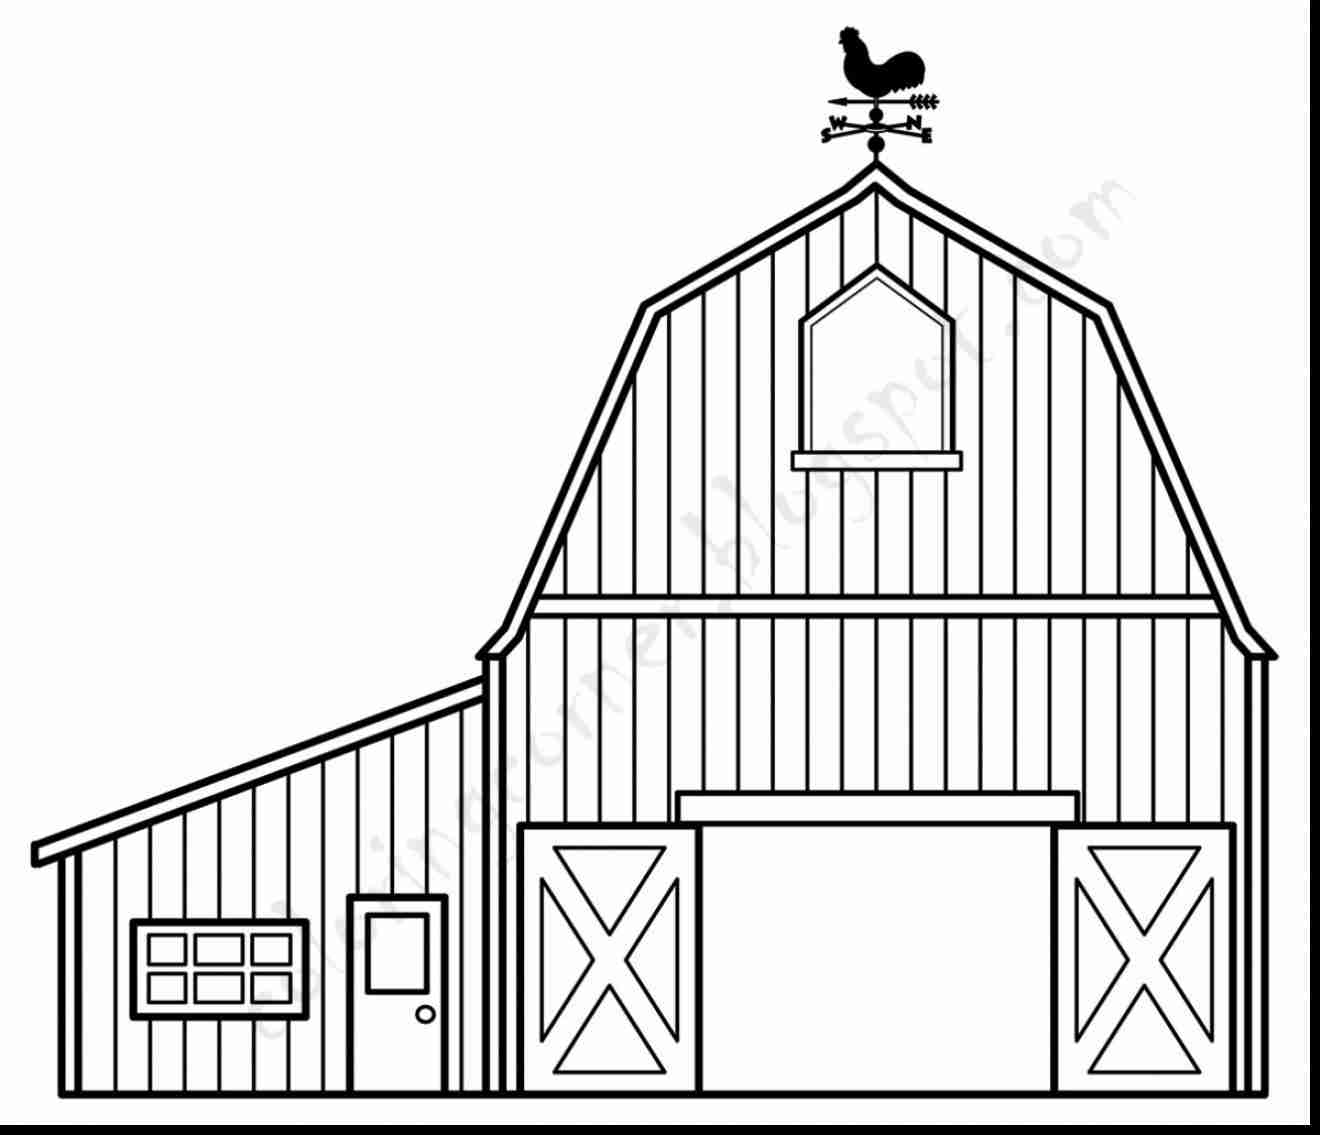 1320x1135 Barn Coloring Page Paginone Biz And To Barns Pages Coloring Pages